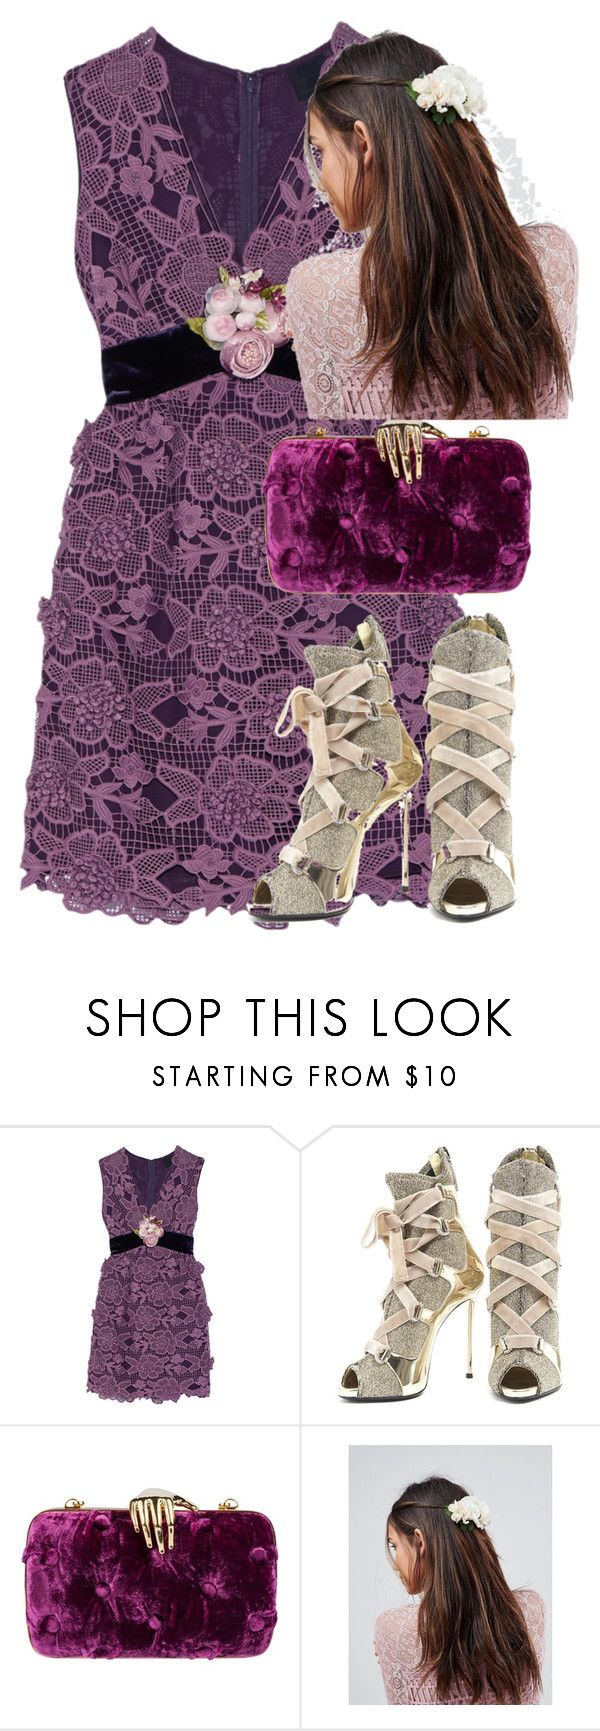 """late night talk show look"" by purplicious ❤ liked on Polyvore featuring Anna Sui, Giuseppe Zanotti, Benedetta Bruzziches and ASOS"